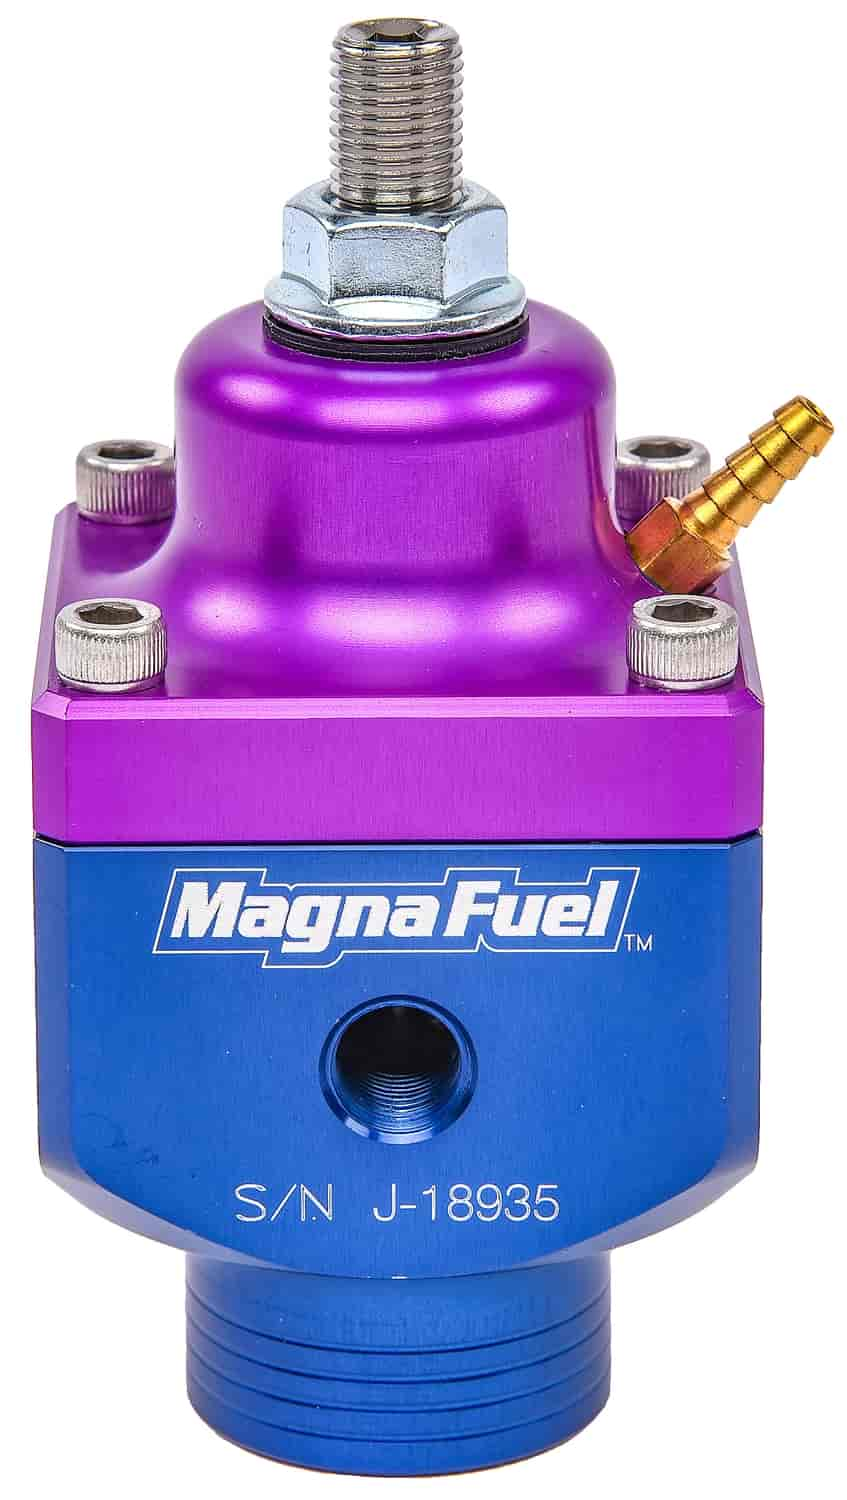 Magnafuel MP-9833-B - MagnaFuel Carbureted Regulators & Fittings